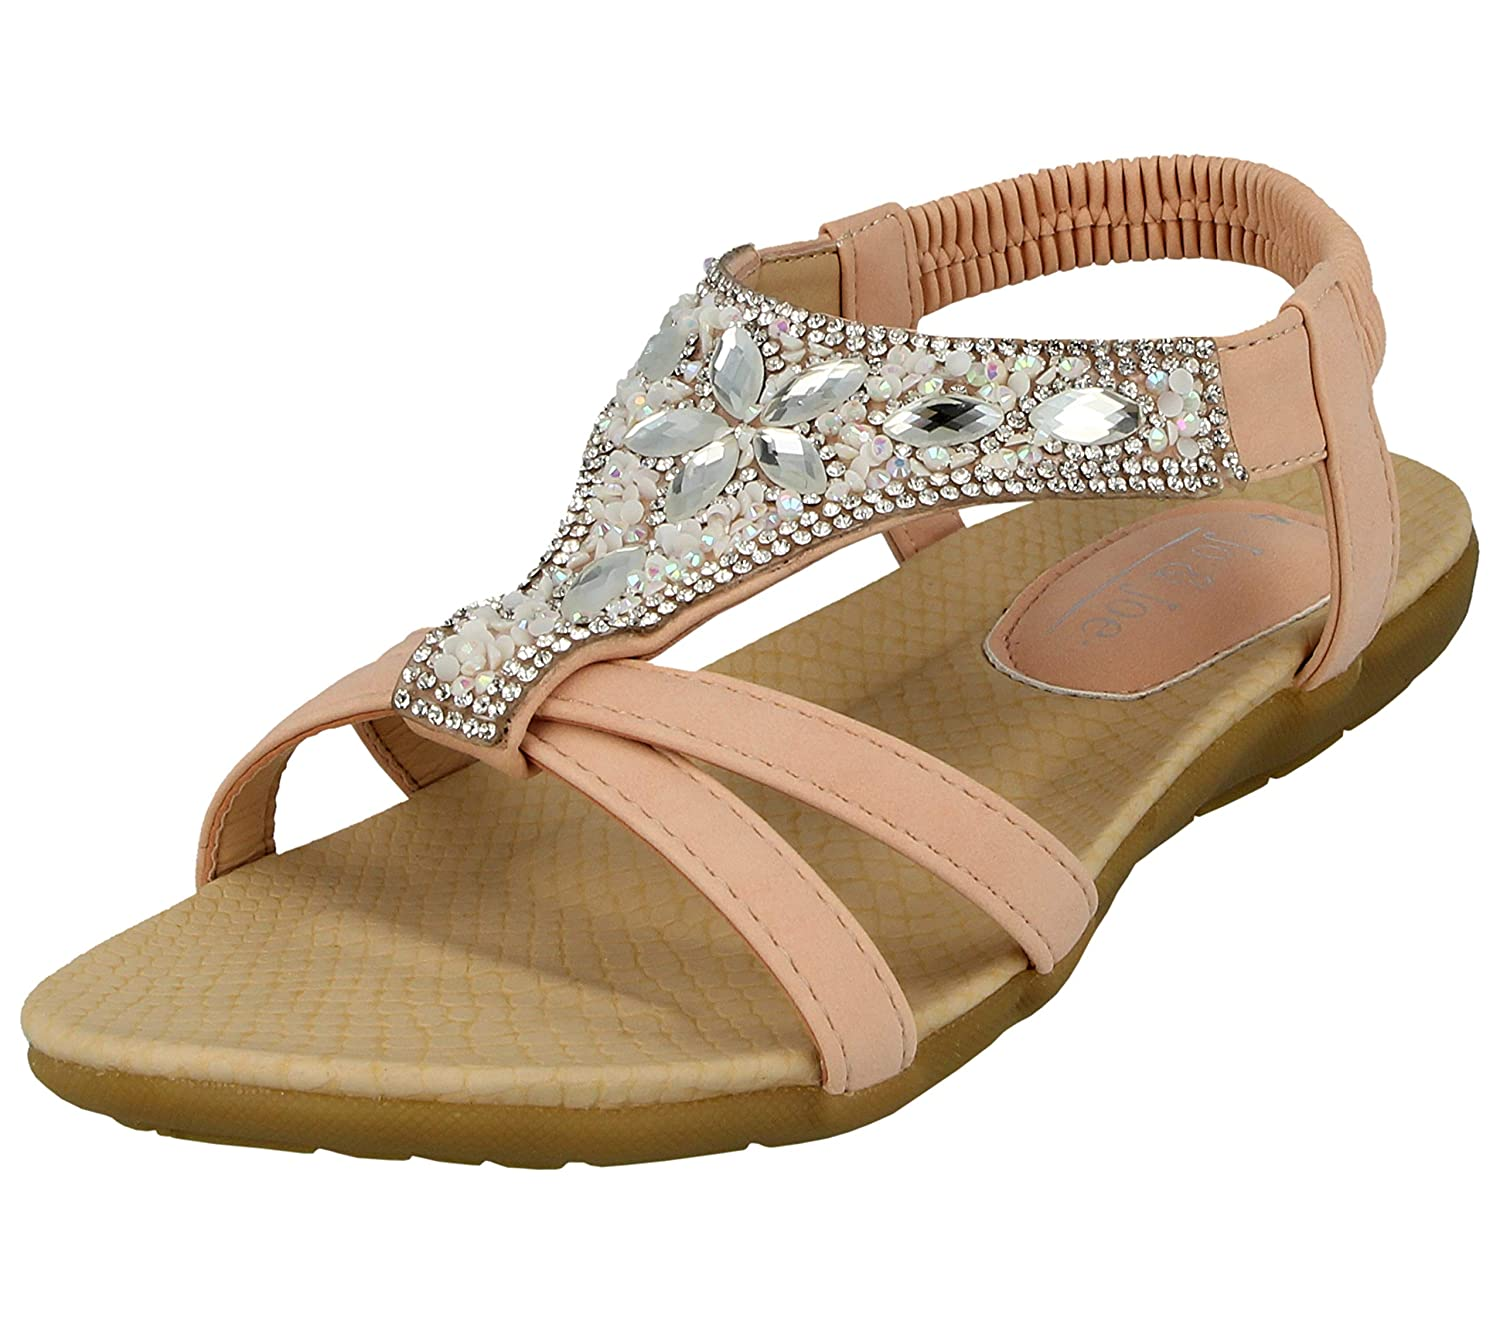 eb2d7c5bedd1d Jo & Joe Ladies Faux Leather Open Toe Sling Back T-Bar Diamante Gem Stone  Flat Gladiator Summer Sandals Size 3-8: Amazon.co.uk: Shoes & Bags